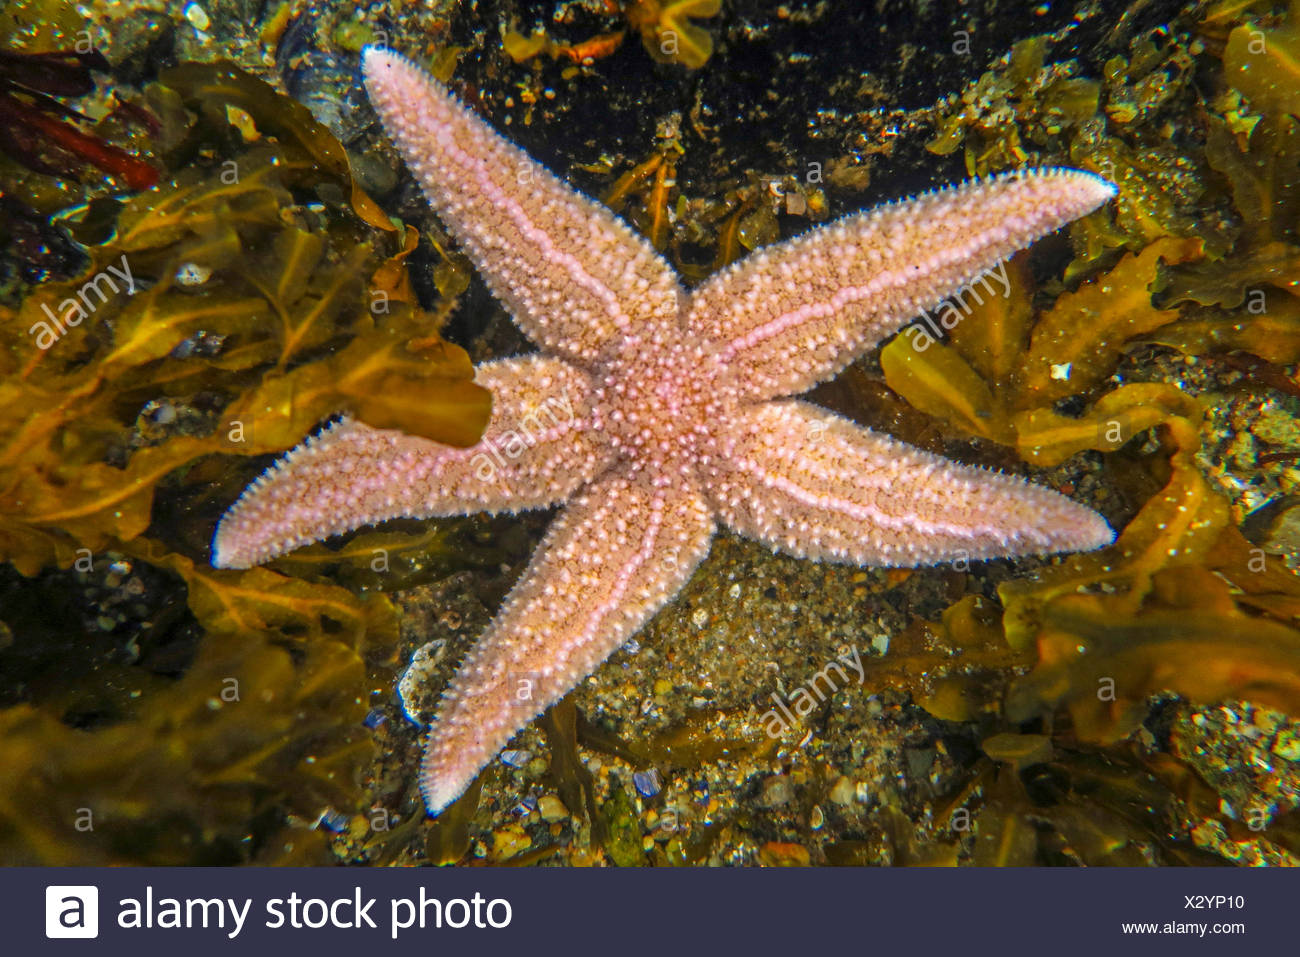 common starfish, common European seastar (Asterias rubens), between seaweeds in shallow water, Norway, Nordland - Stock Image